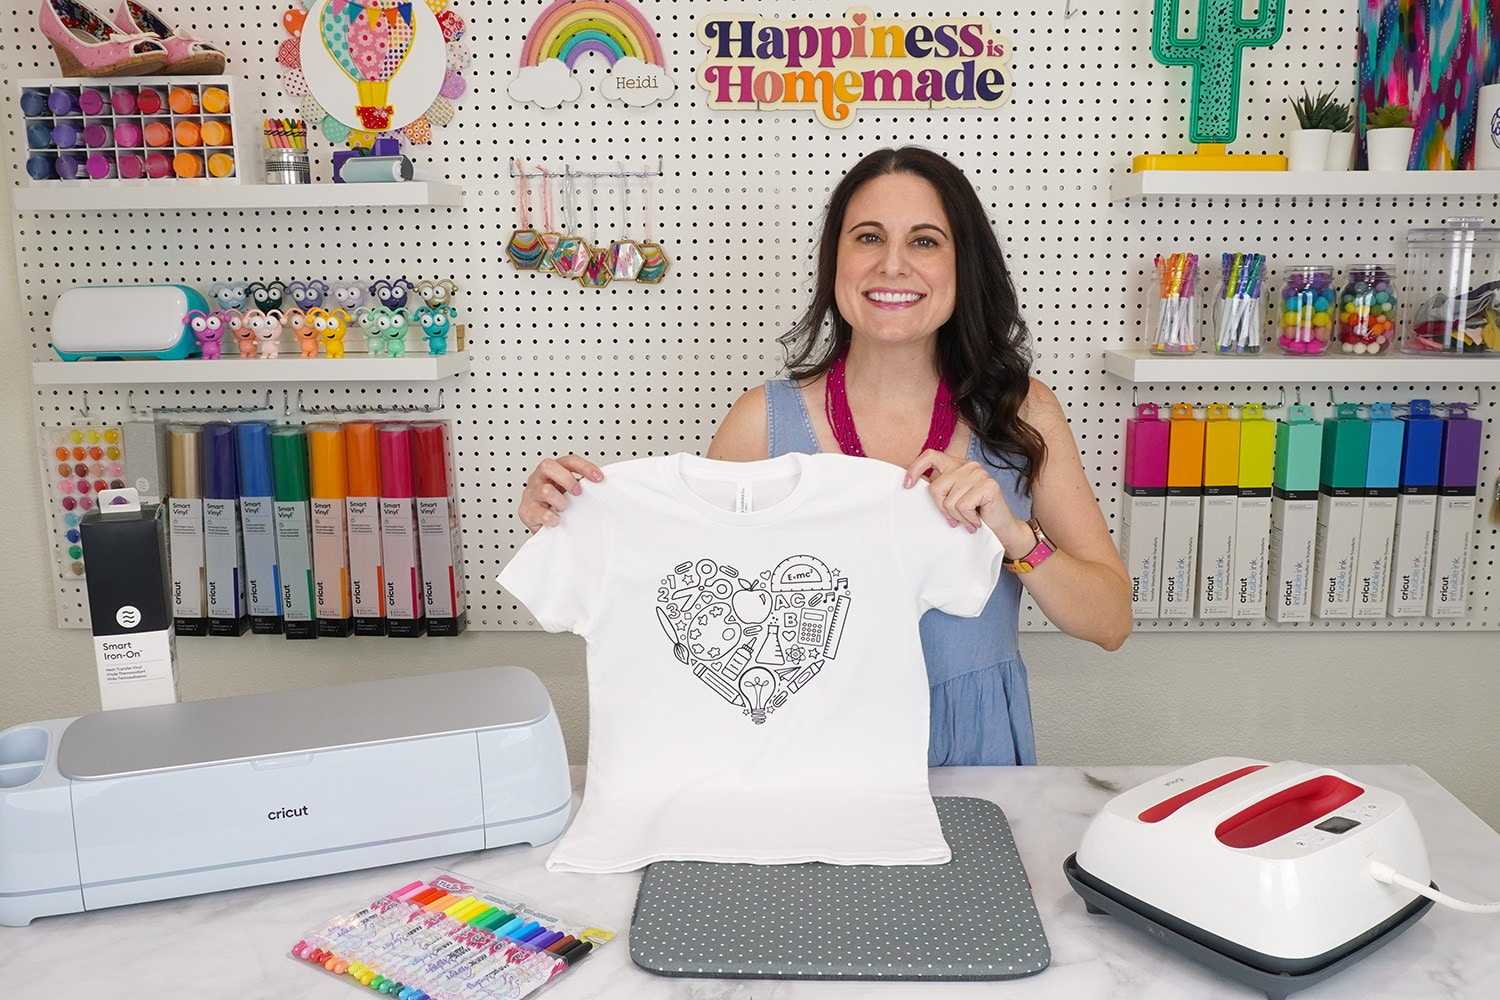 Heidi Holding Up Back to School Shirt in front of craft room pegboard of colorful supplies